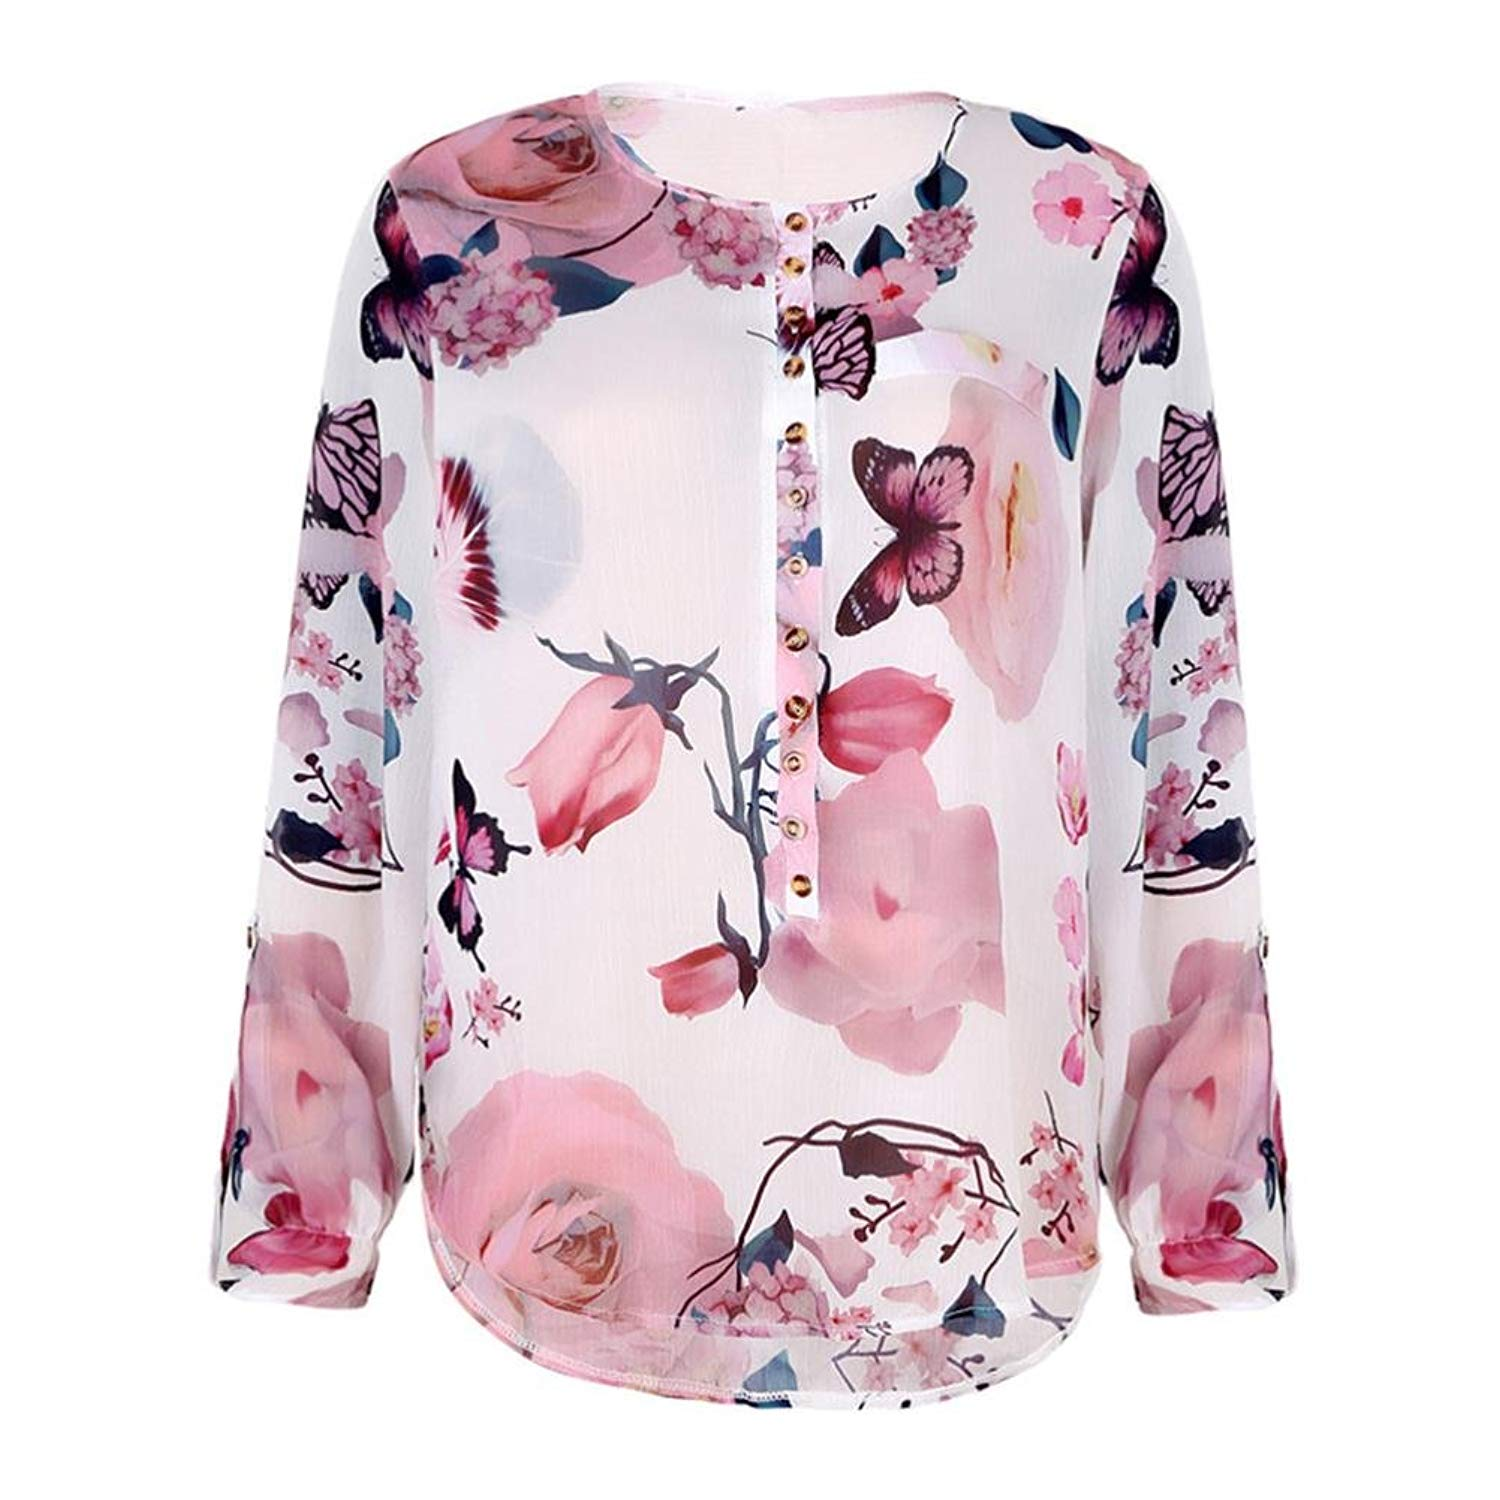 Feitengtd WomensFloral Print V Neck Tunic Tops Blouses Casual Tops Long Sleeve Chiffon Loose Blouse Tops